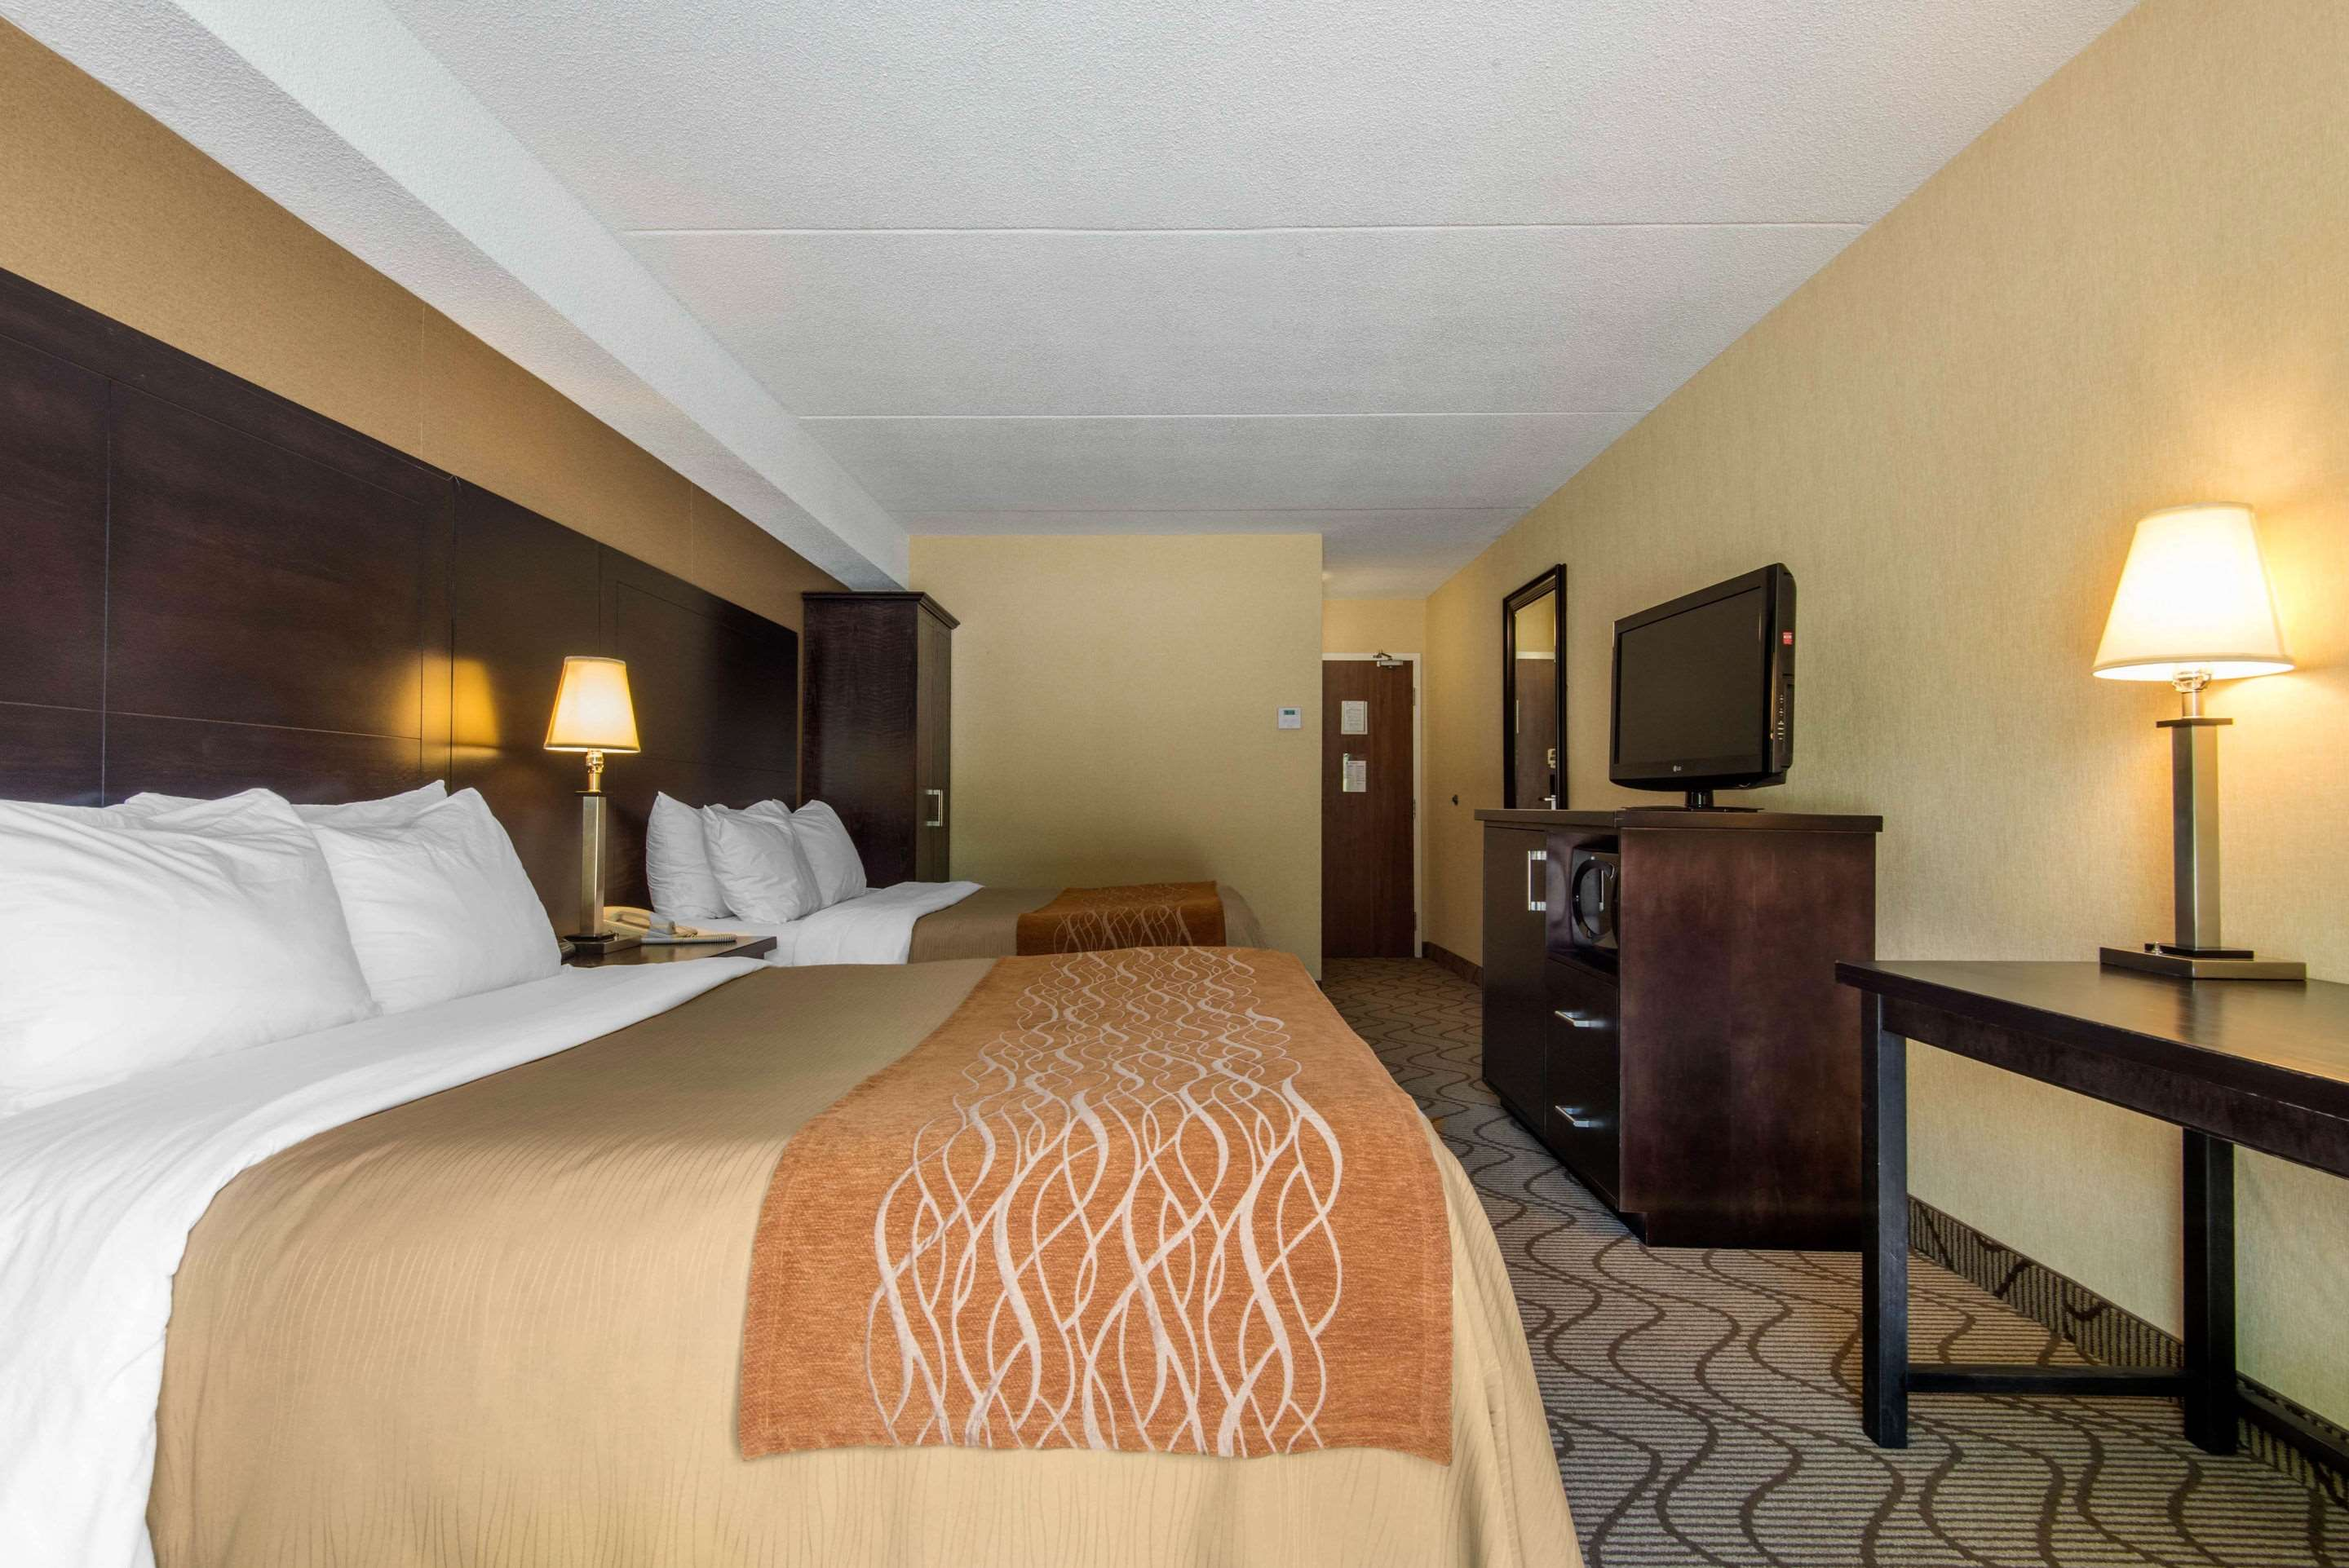 Comfort Inn in North Bay: Guest room with two beds